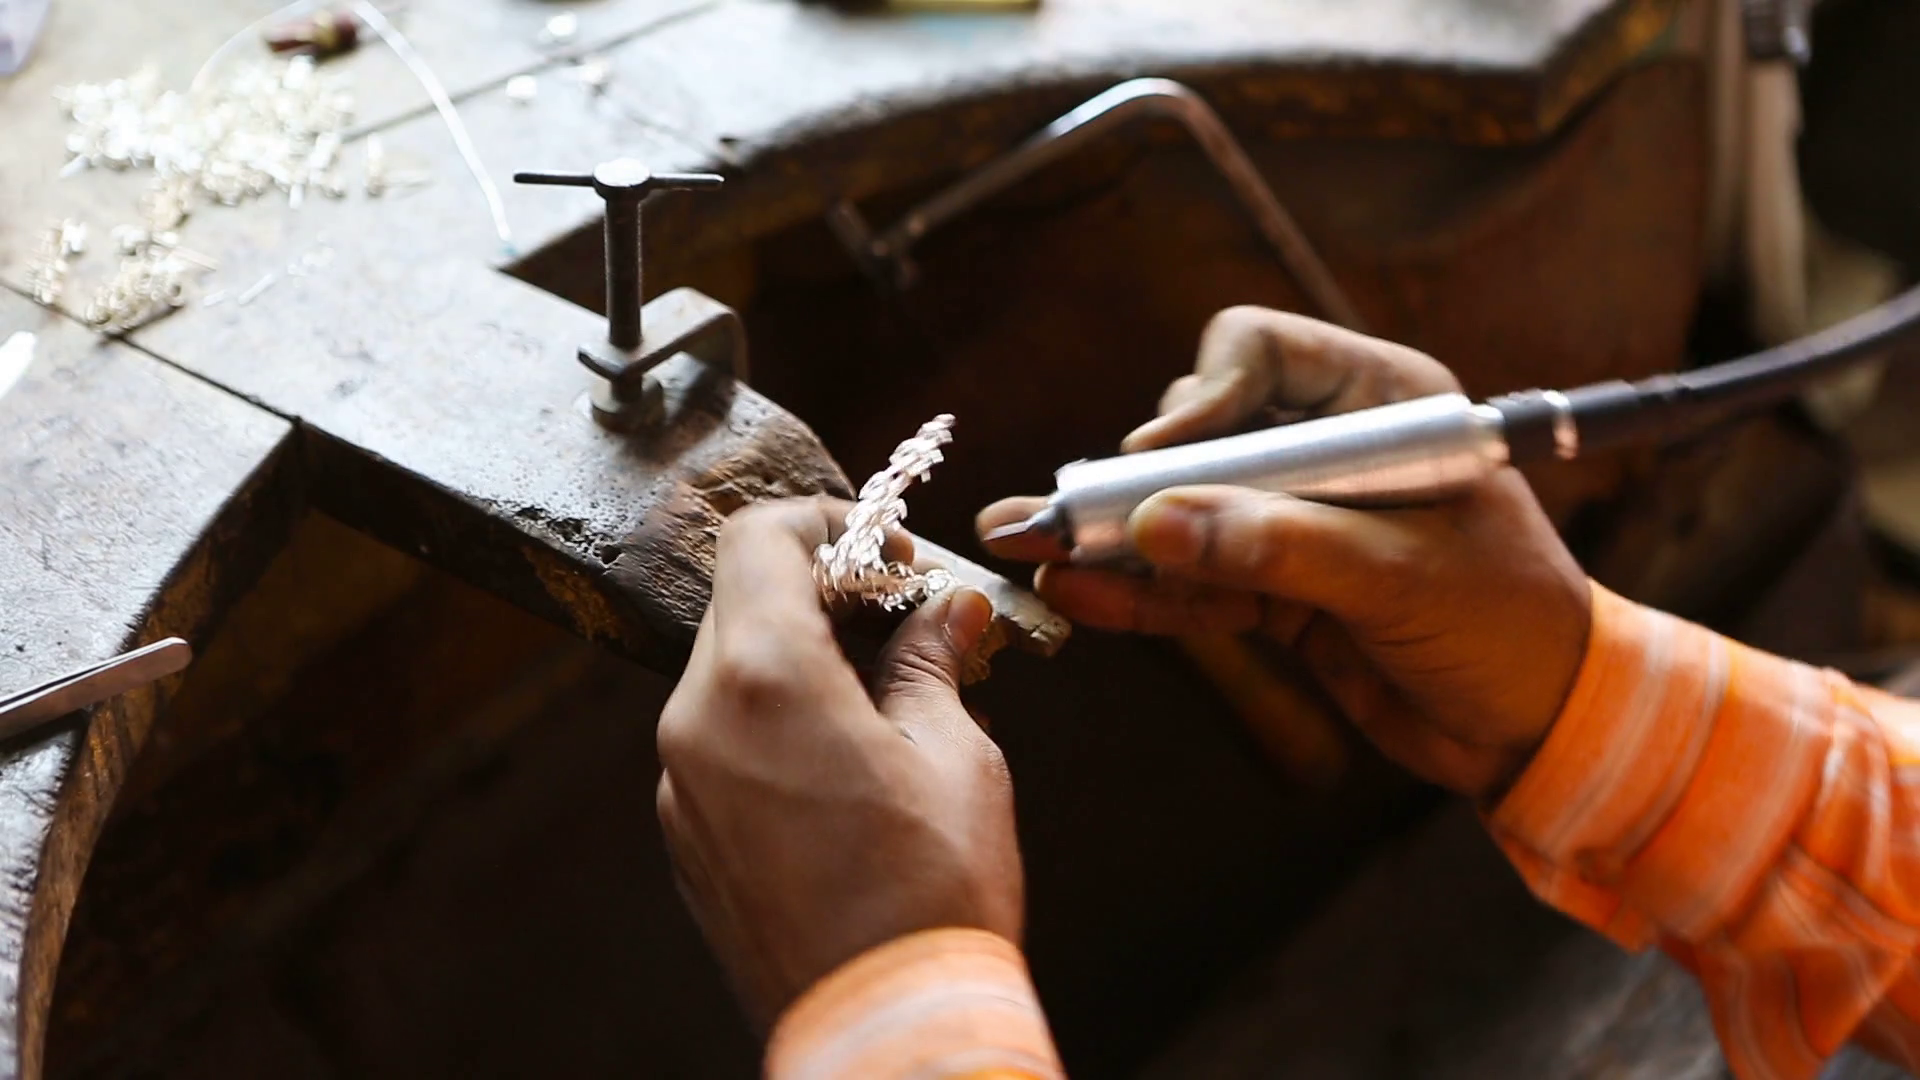 videoblocks-indian-jeweler-making-an-oriental-jewelry-in-workshop-handmade-traditional-jewel-manufacturing-in-jaipur-rajasthan-jewelry-manufacturing-process-in-india-indian-silver-and-gold-jewel-and-gems_r_fne-dfax_thumbnail-full01.png